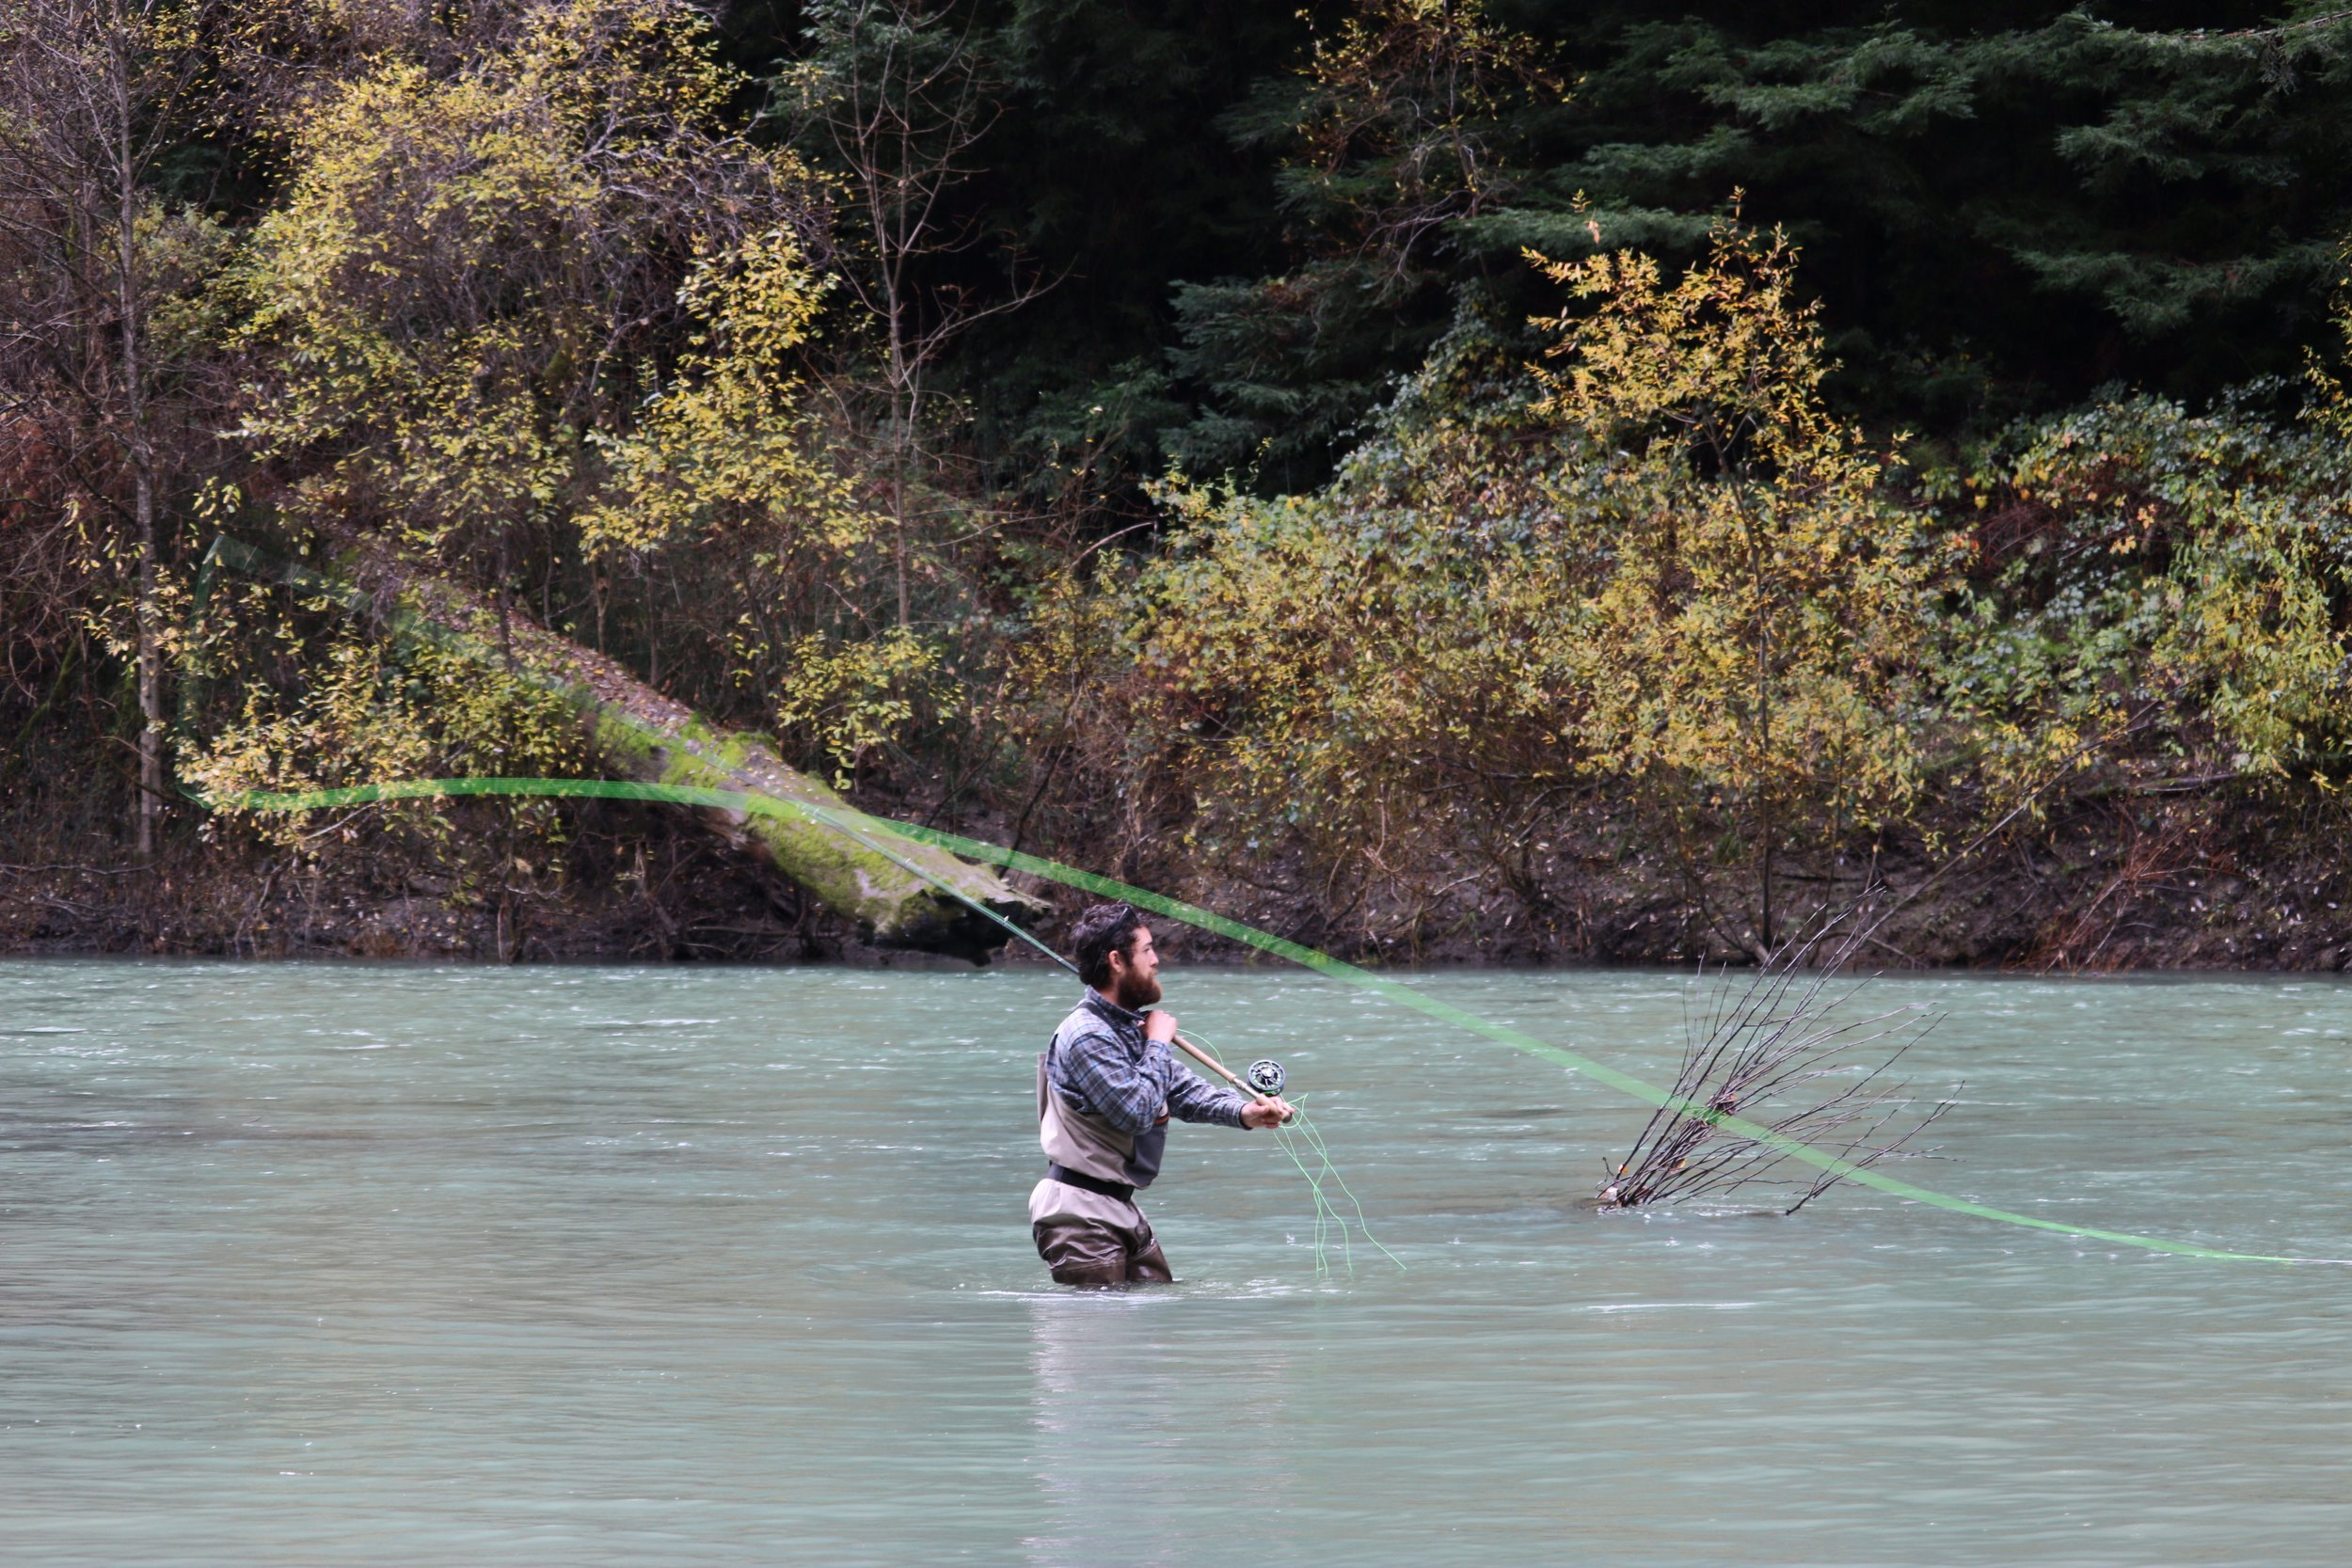 Setting up for a perry poke on the Eel River